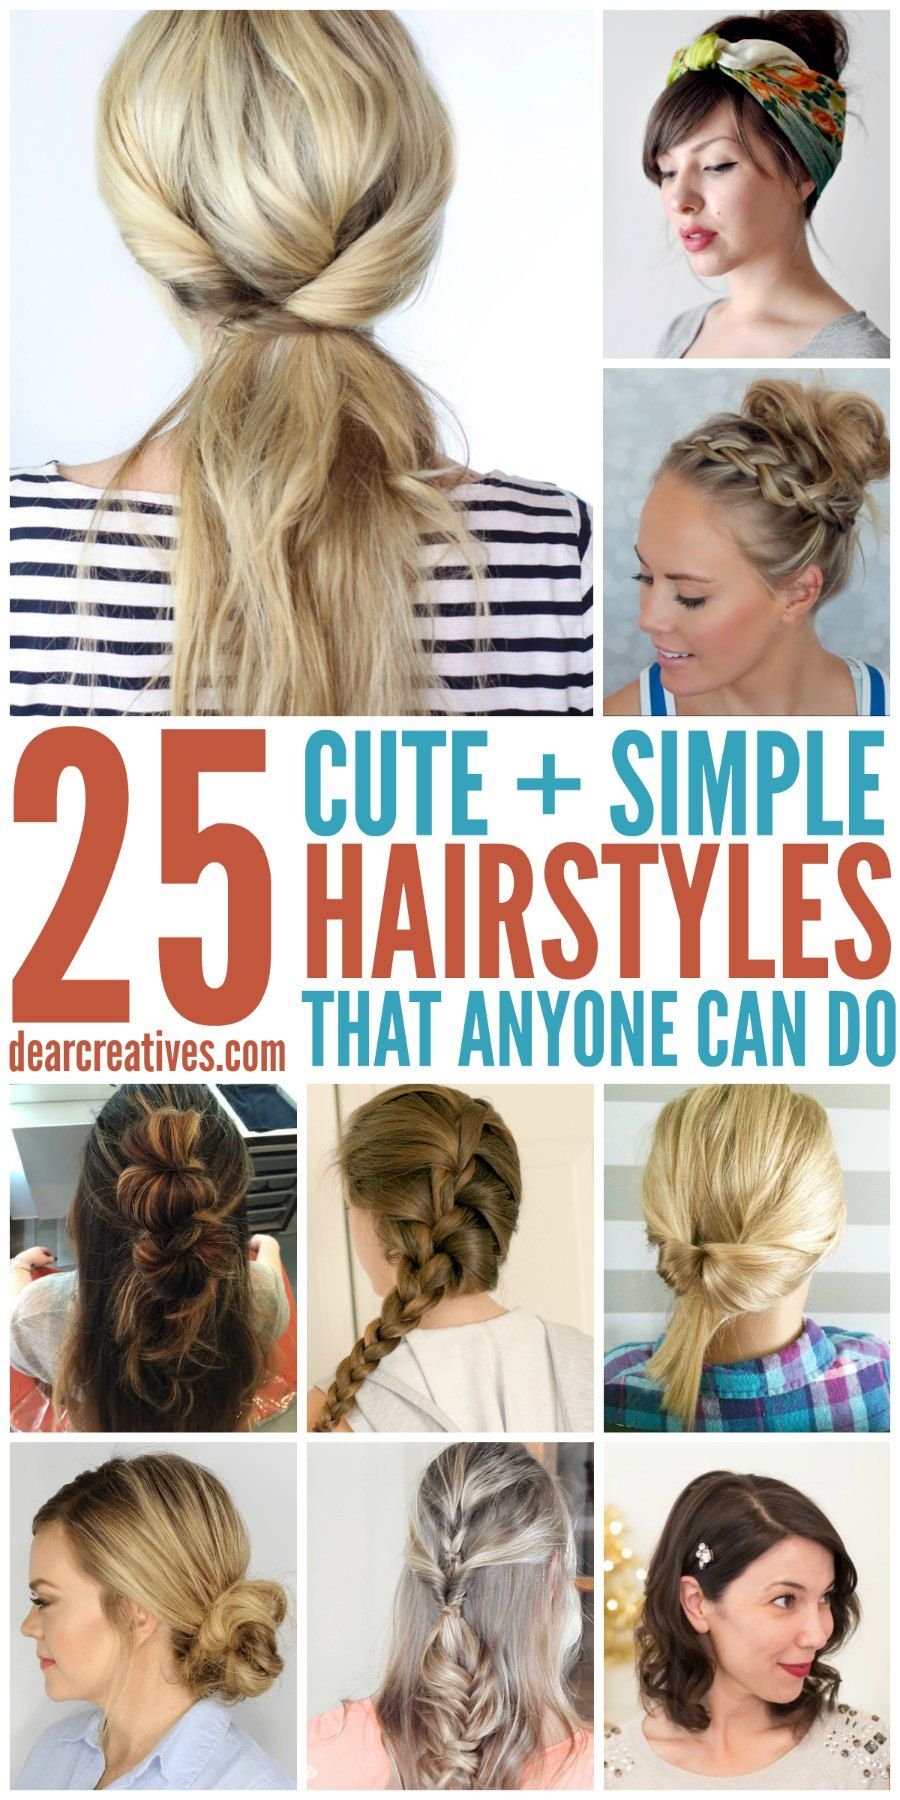 Hairstyles Simple Hairstyles For Long Hair That Anyone Can Do Easy Hairstyles Cute Simple Hairstyles Medium Hair Styles